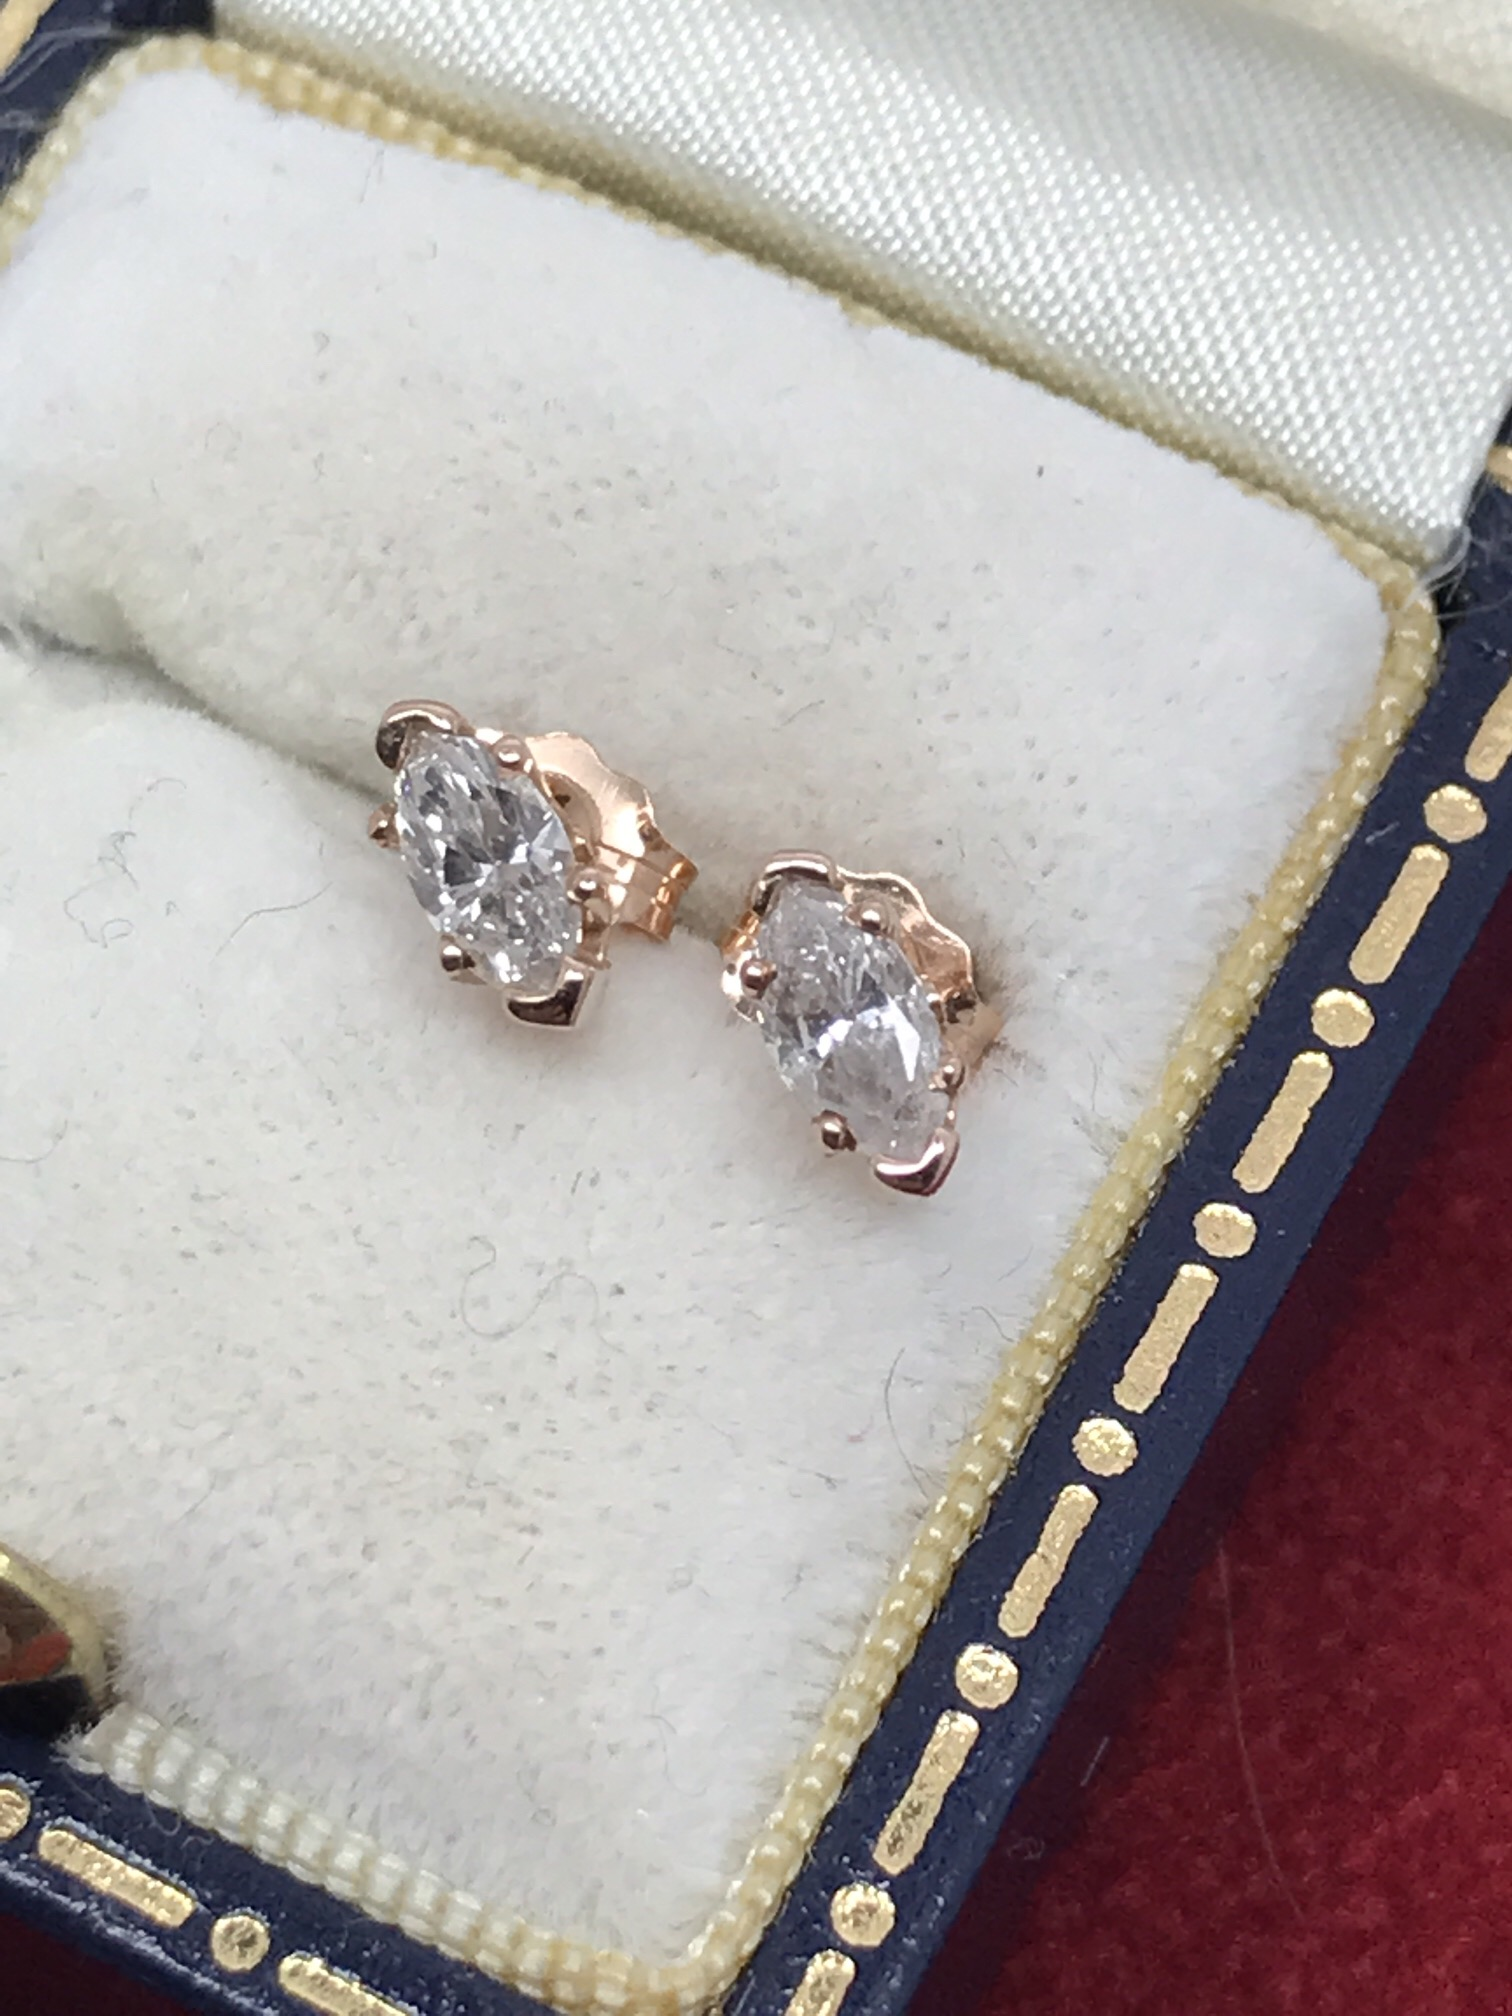 Lot 34 - FINE MARQUISE CUT DIAMOND SOLITAIRE EARRINGS SET IN 14K ROSE GOLD